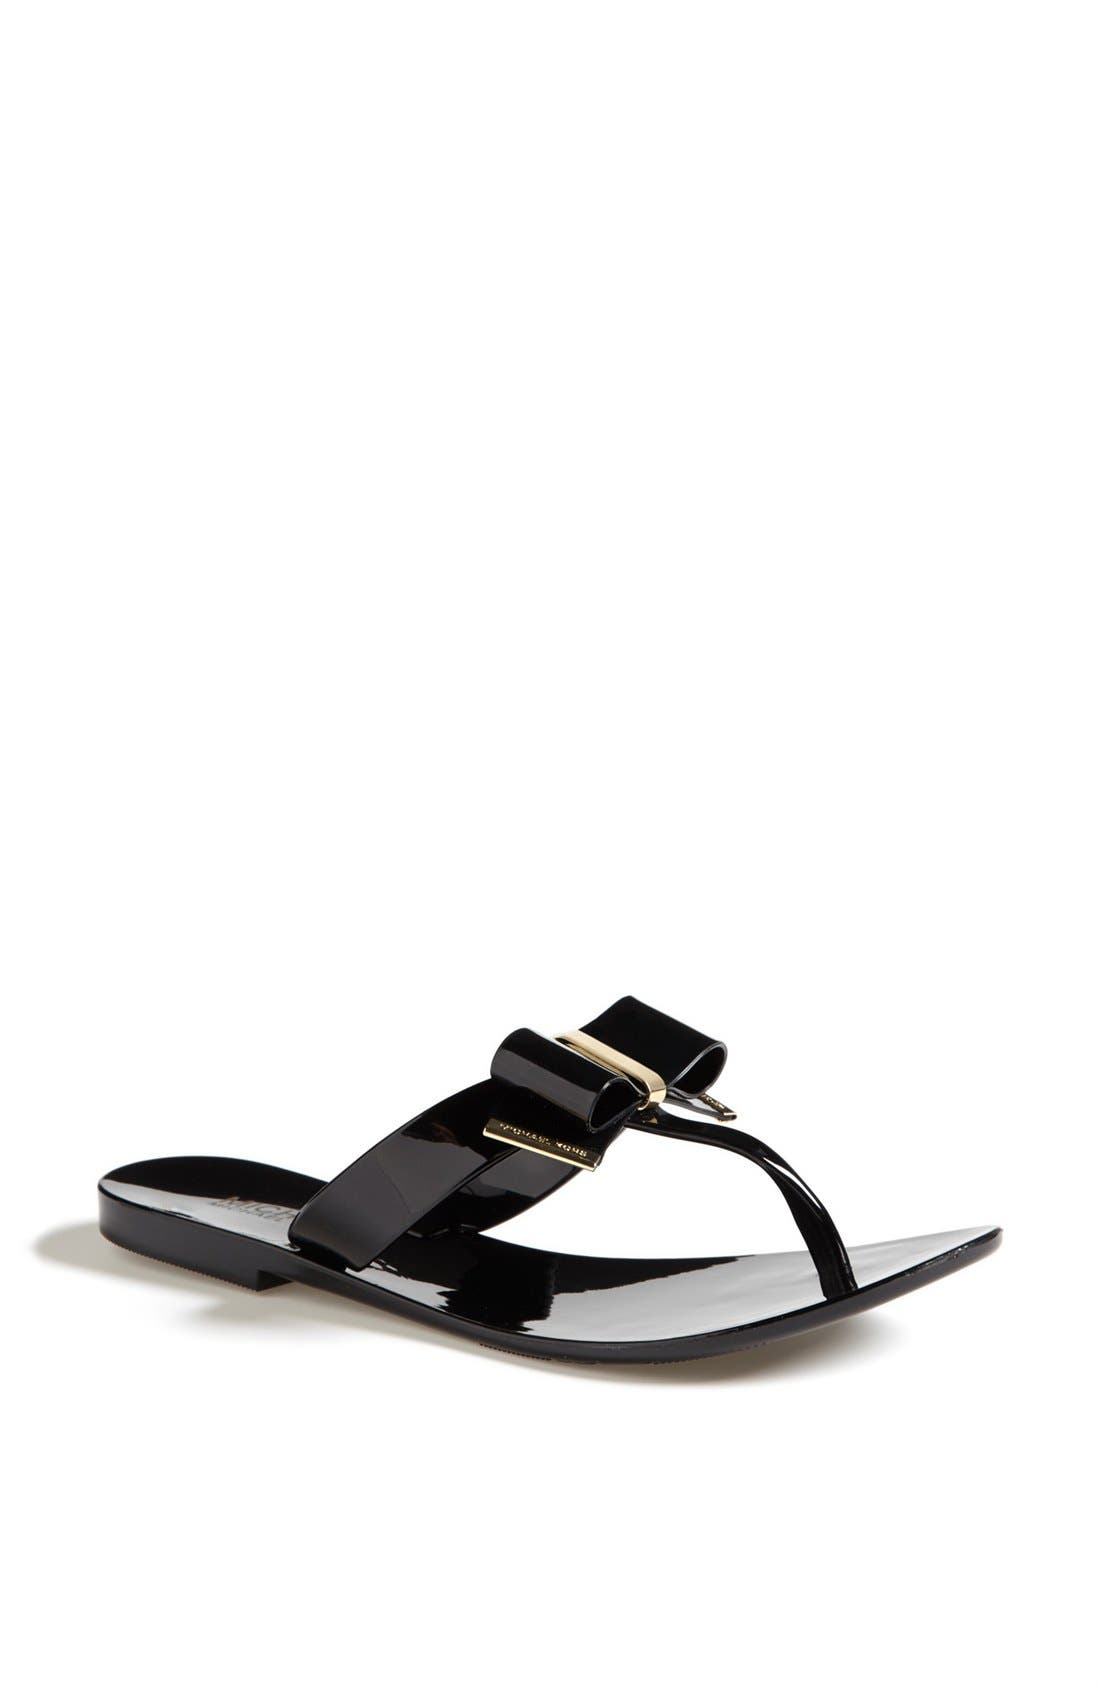 Alternate Image 1 Selected - MICHAEL Michael Kors 'Kayden' Sandal